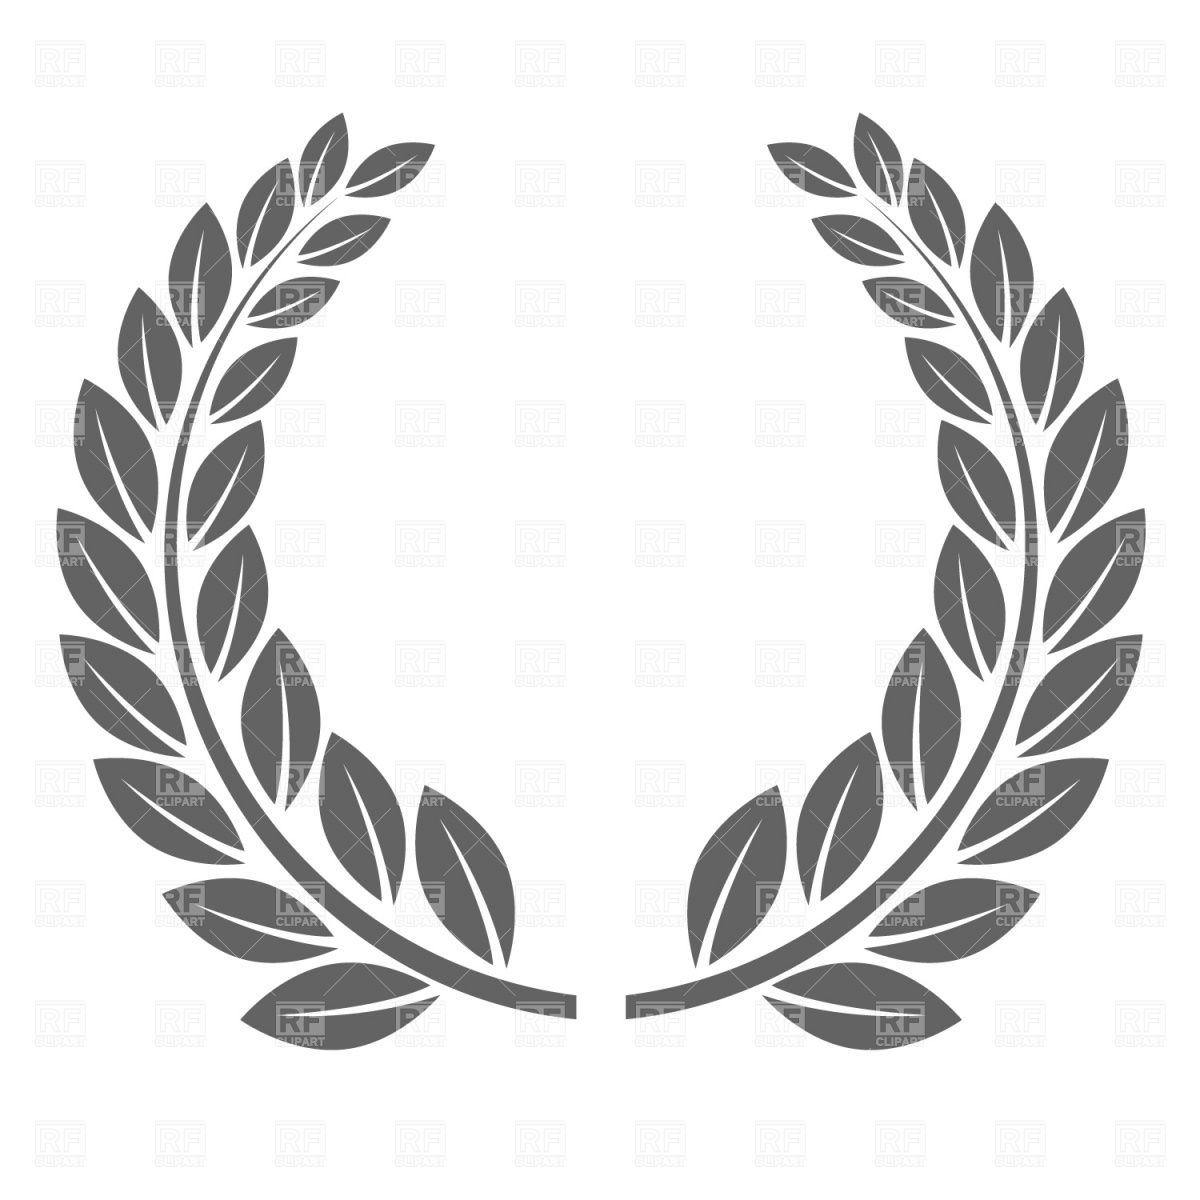 Royalty free wreath clipart black and white svg black and white stock Pin by Meg Sherrill on Print It!   Laurel wreath, Vector ... svg black and white stock